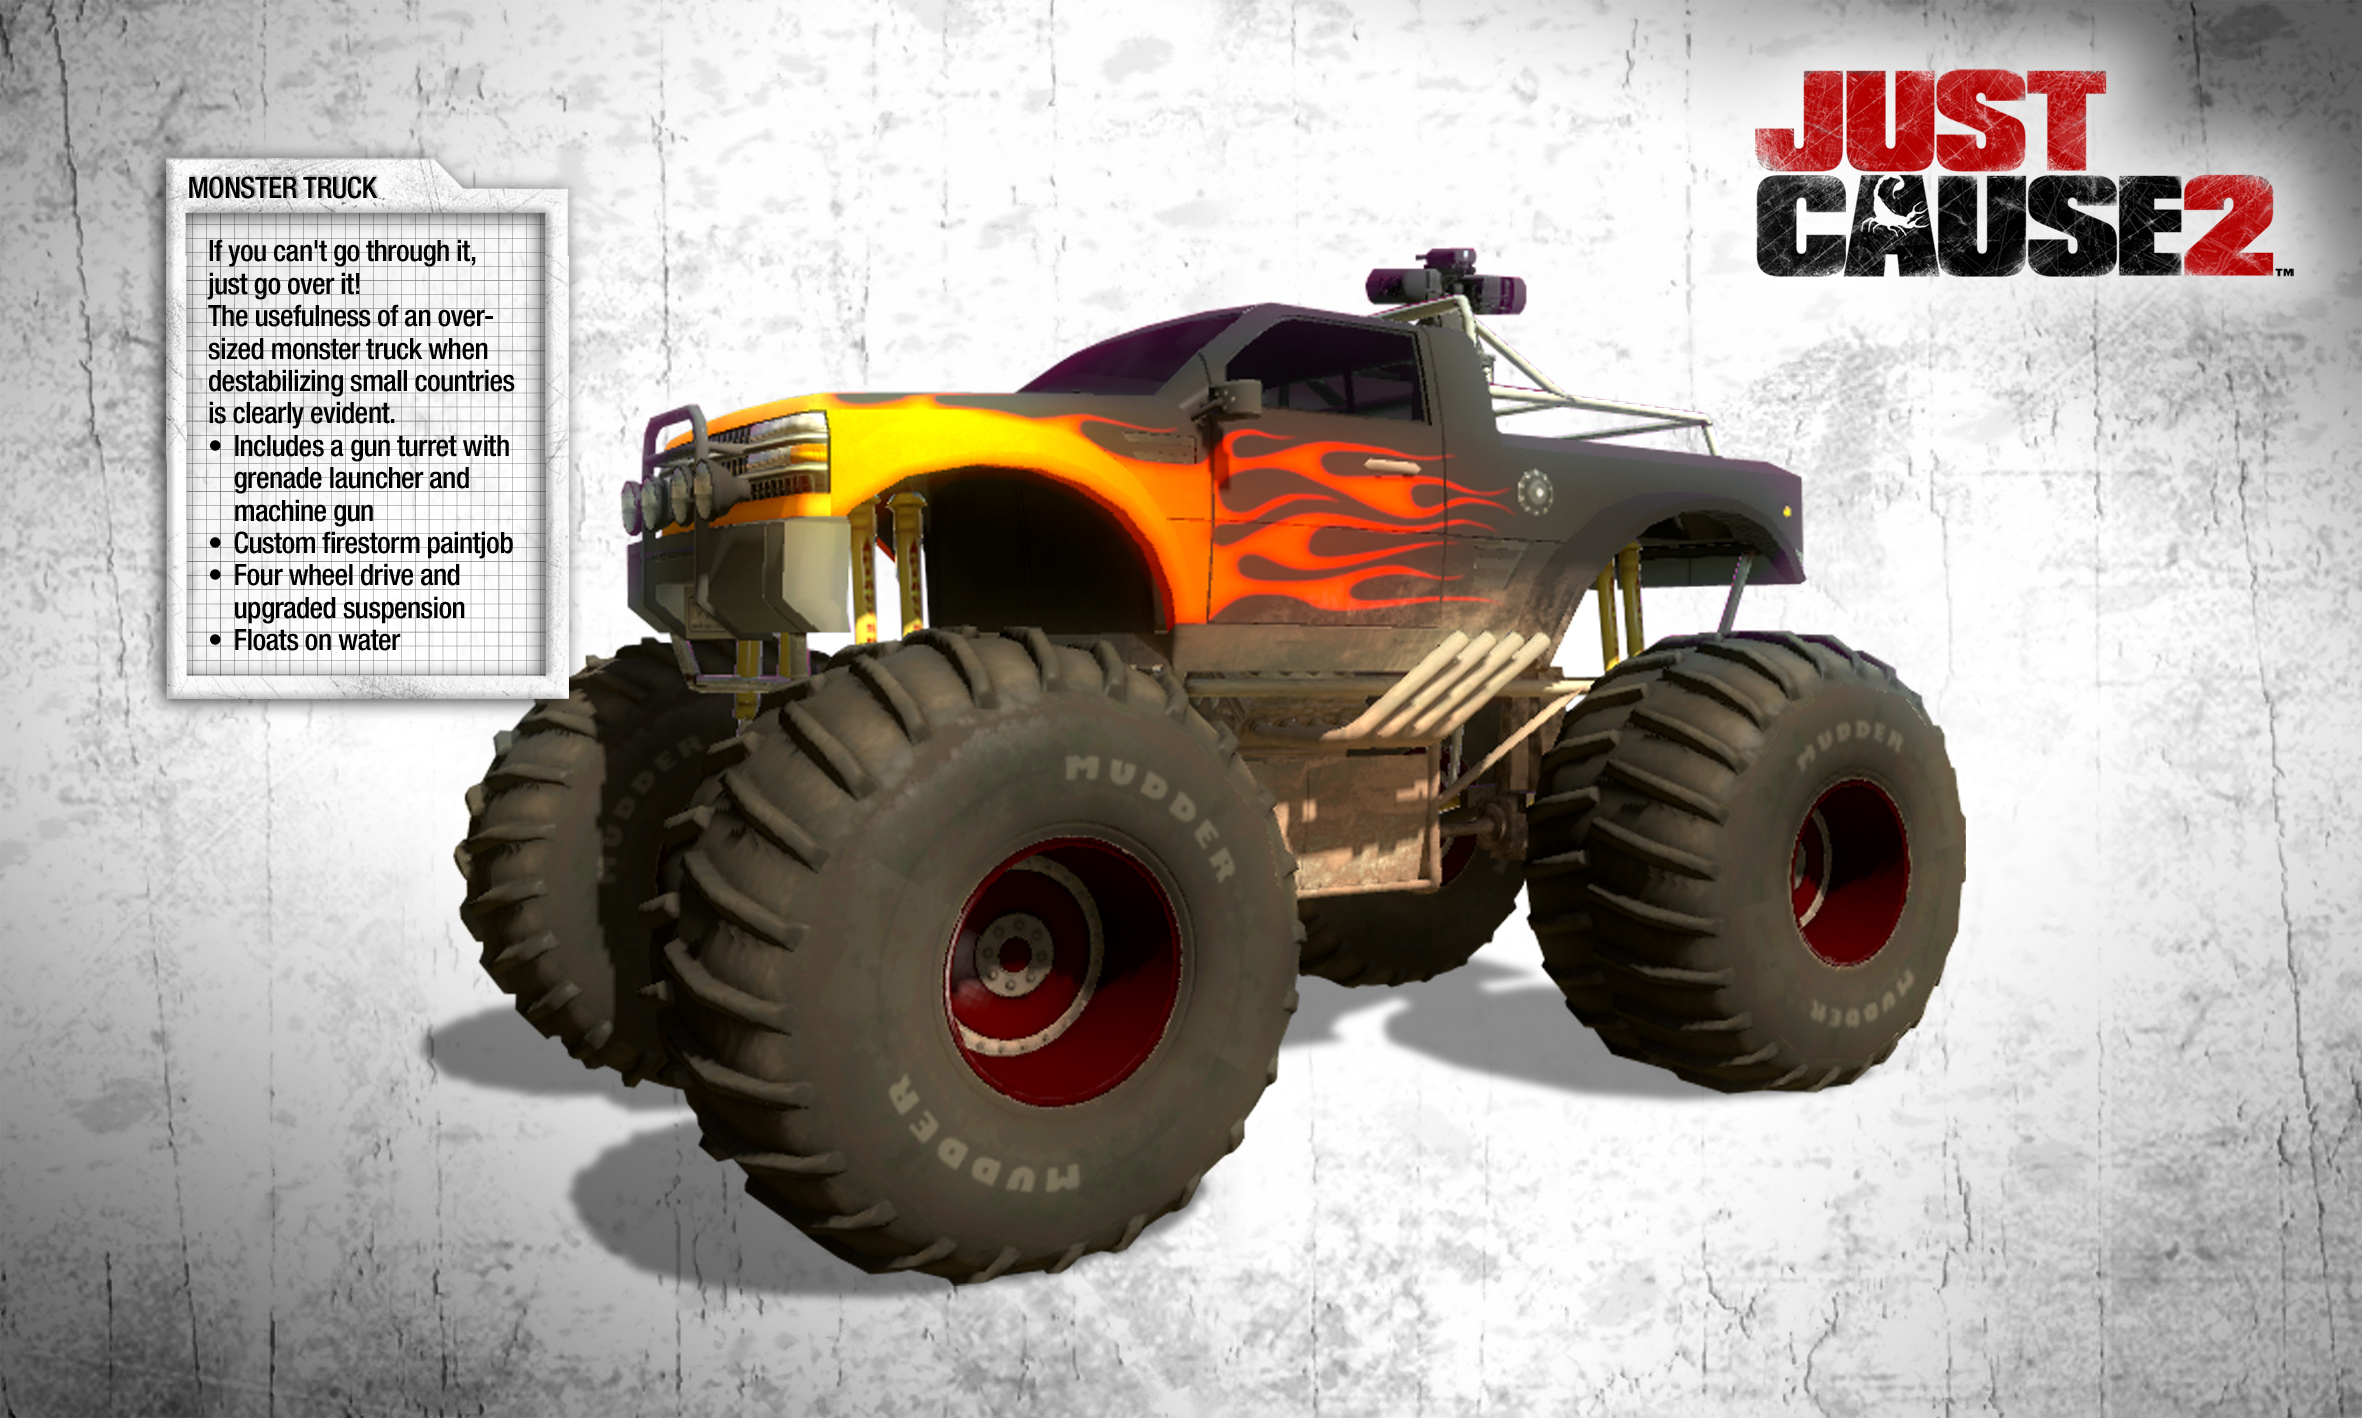 Just Cause 2: Monster Truck DLC screenshot